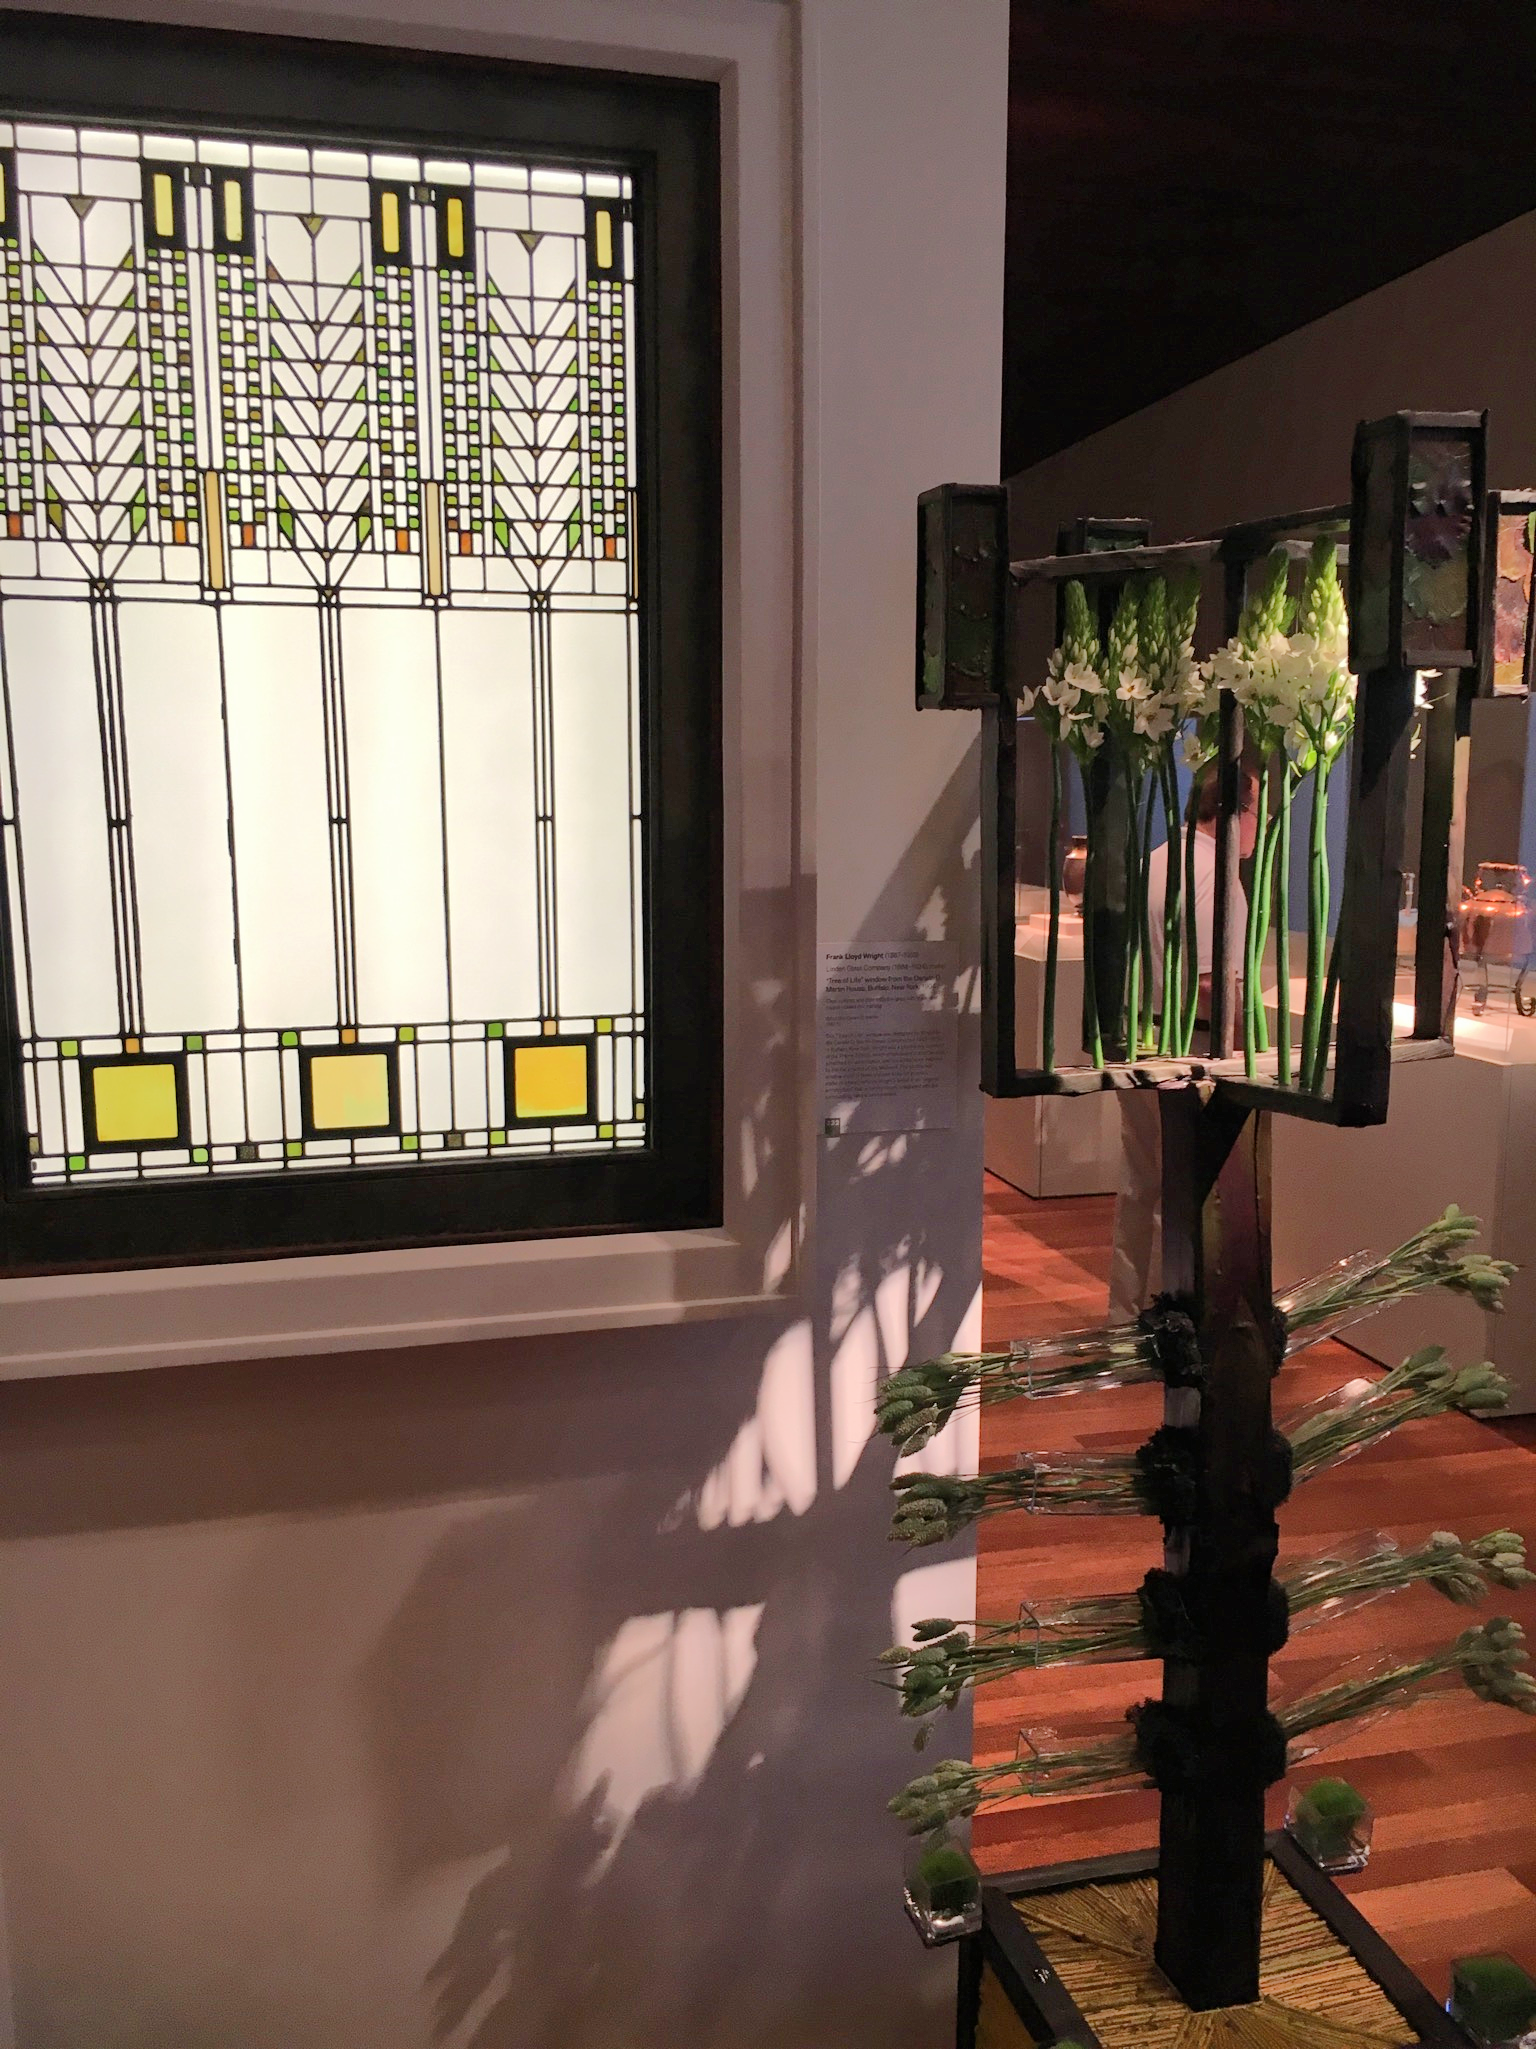 My Mom and I liked this combo of art and floral arrangement, and then we realized the stain glass is Frank Lloyd Wright!